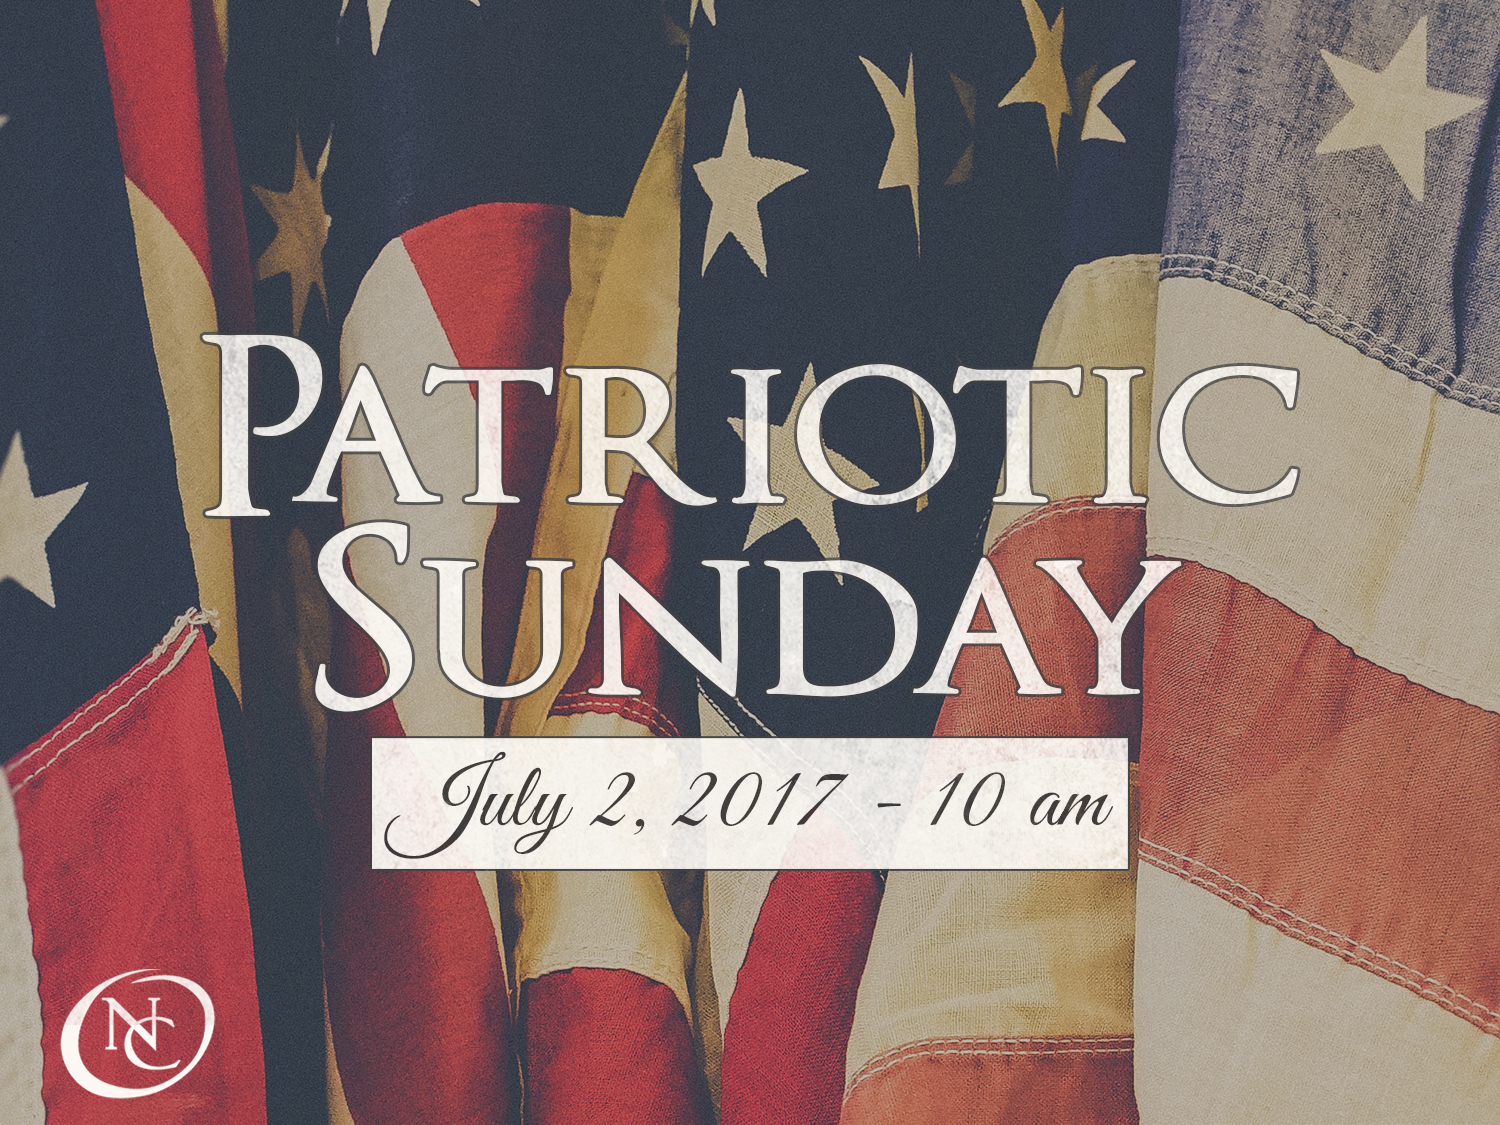 Patriotic Sunday with Chad Connelly 2018